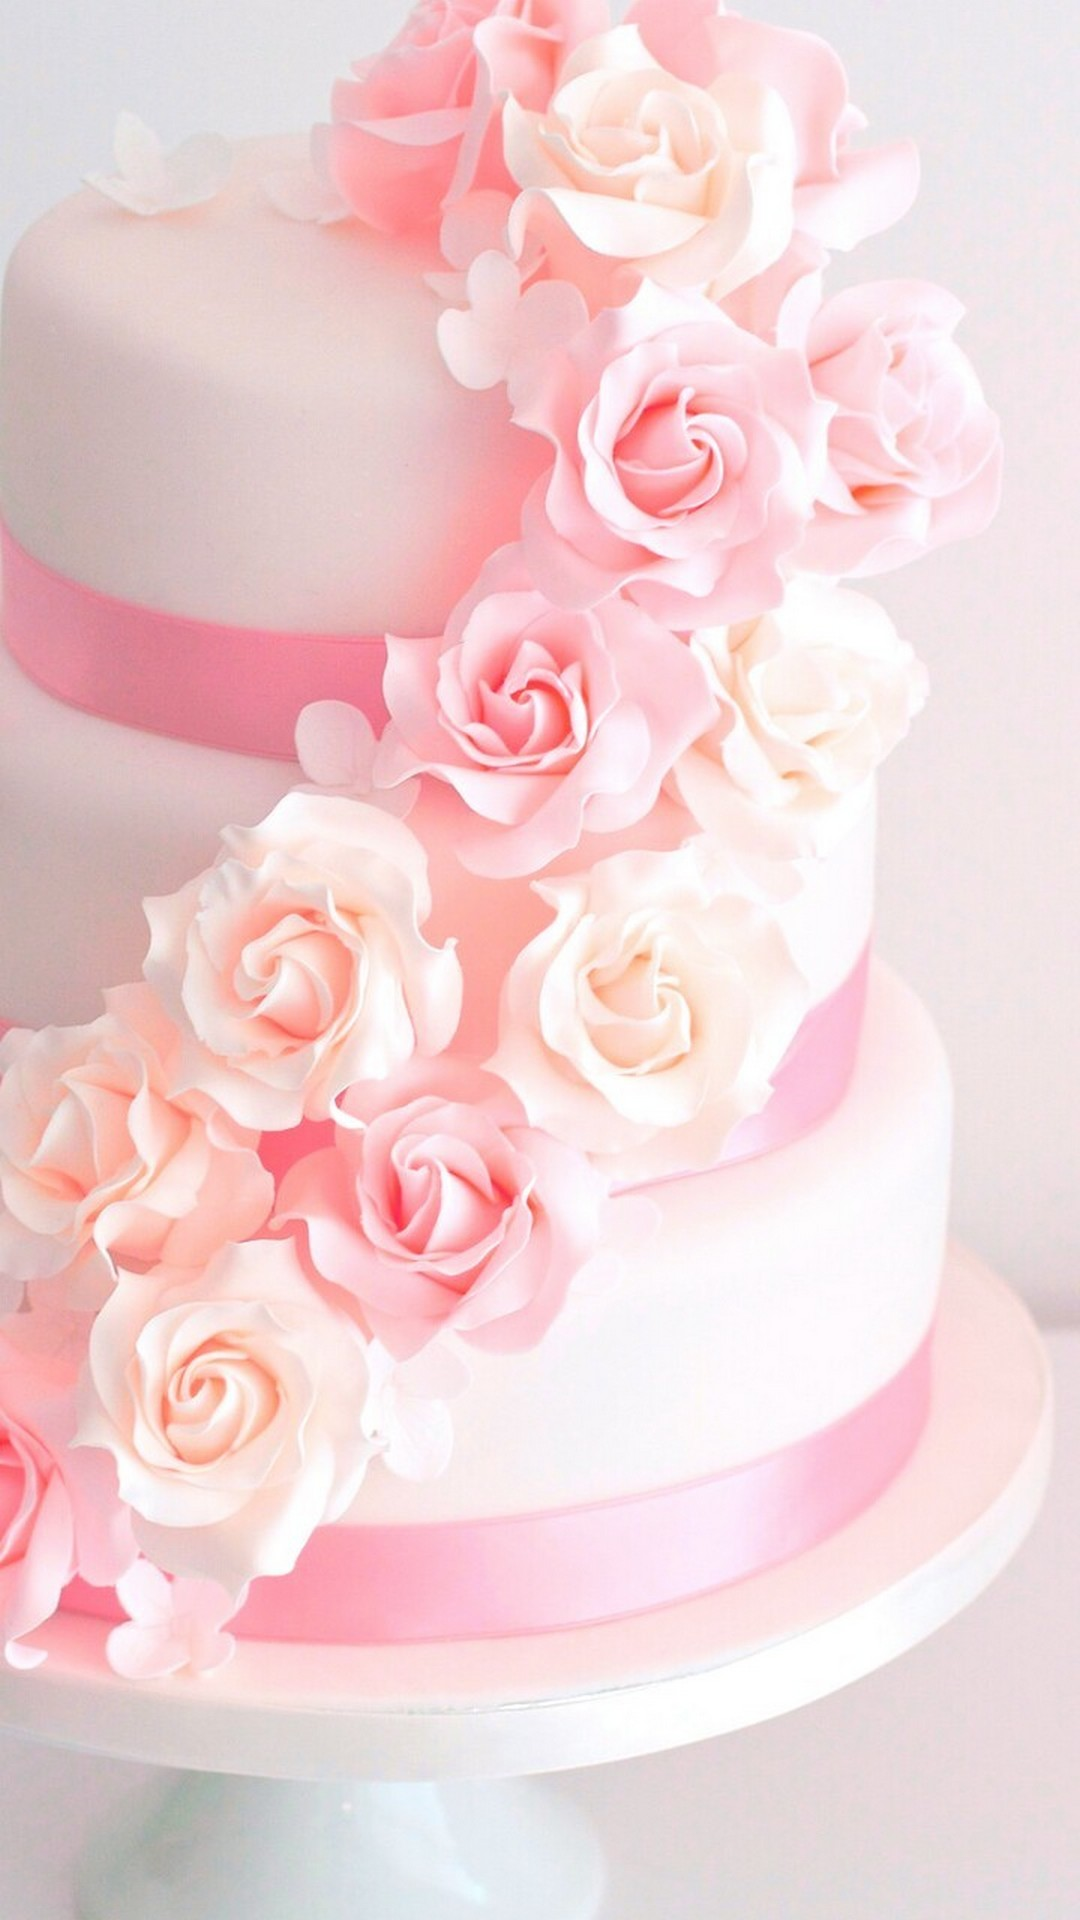 Cake Images Wallpaper Android